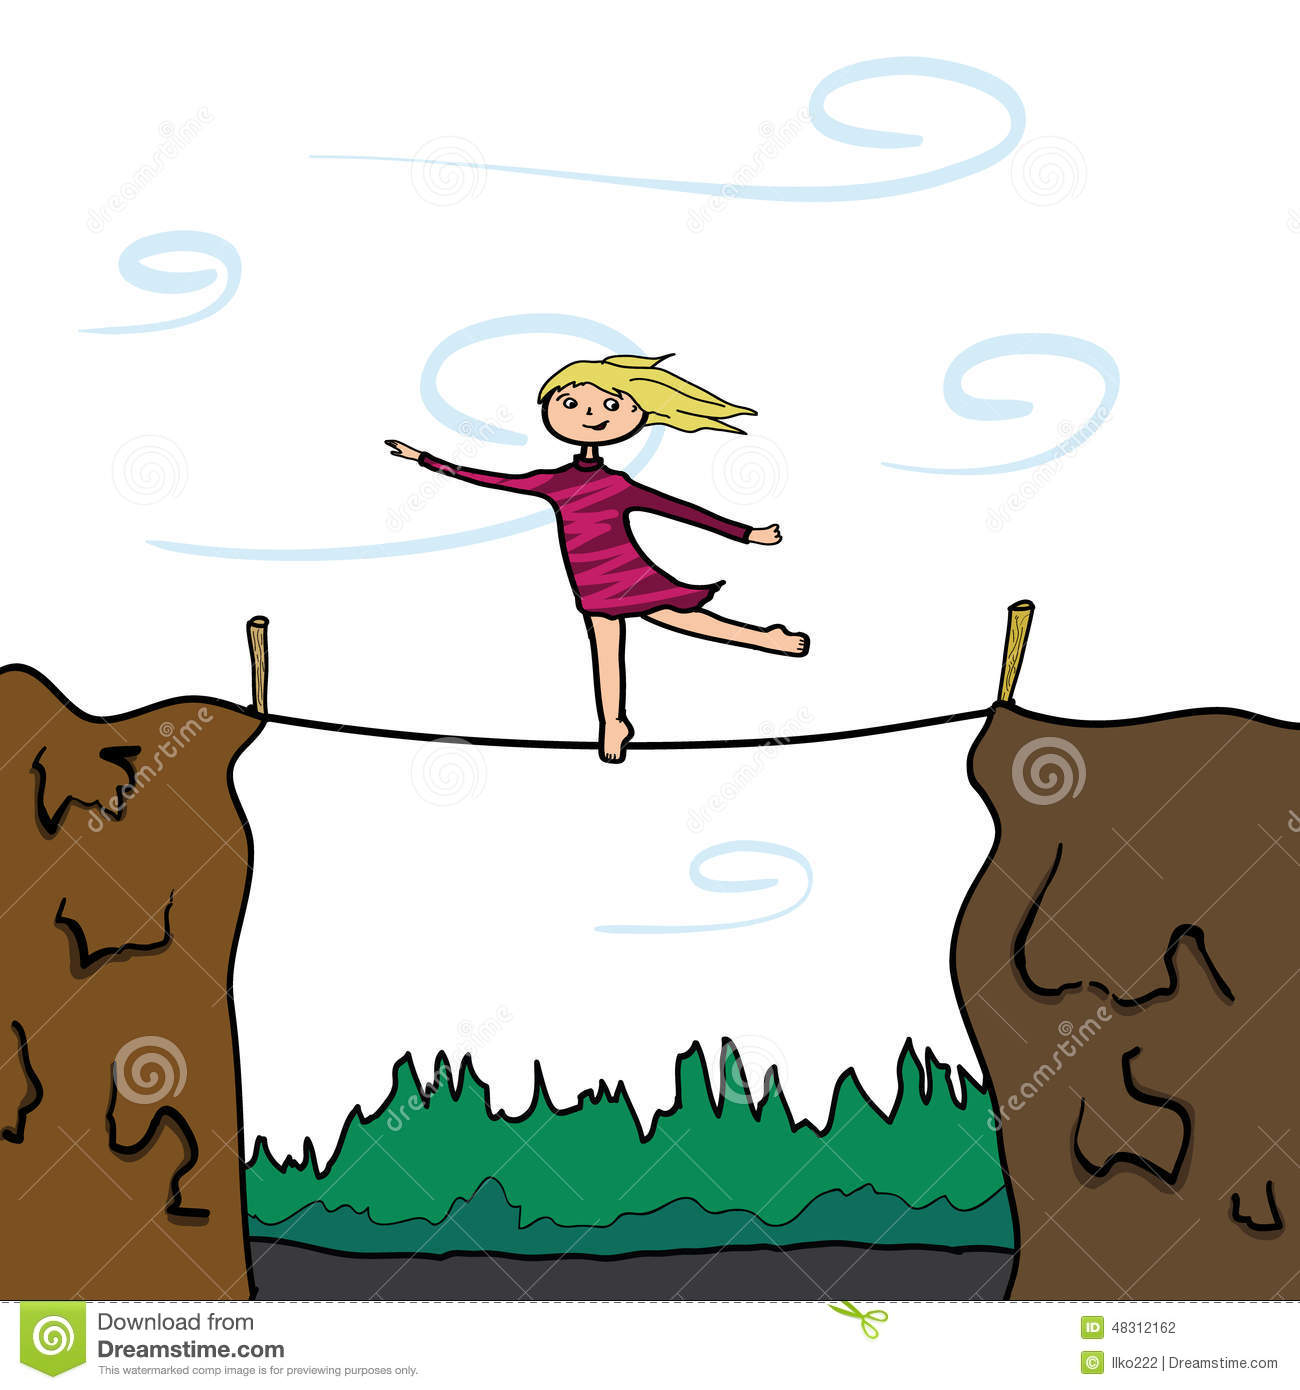 Keep Your Balance. Girl On A Slackline. Stock Illustration.